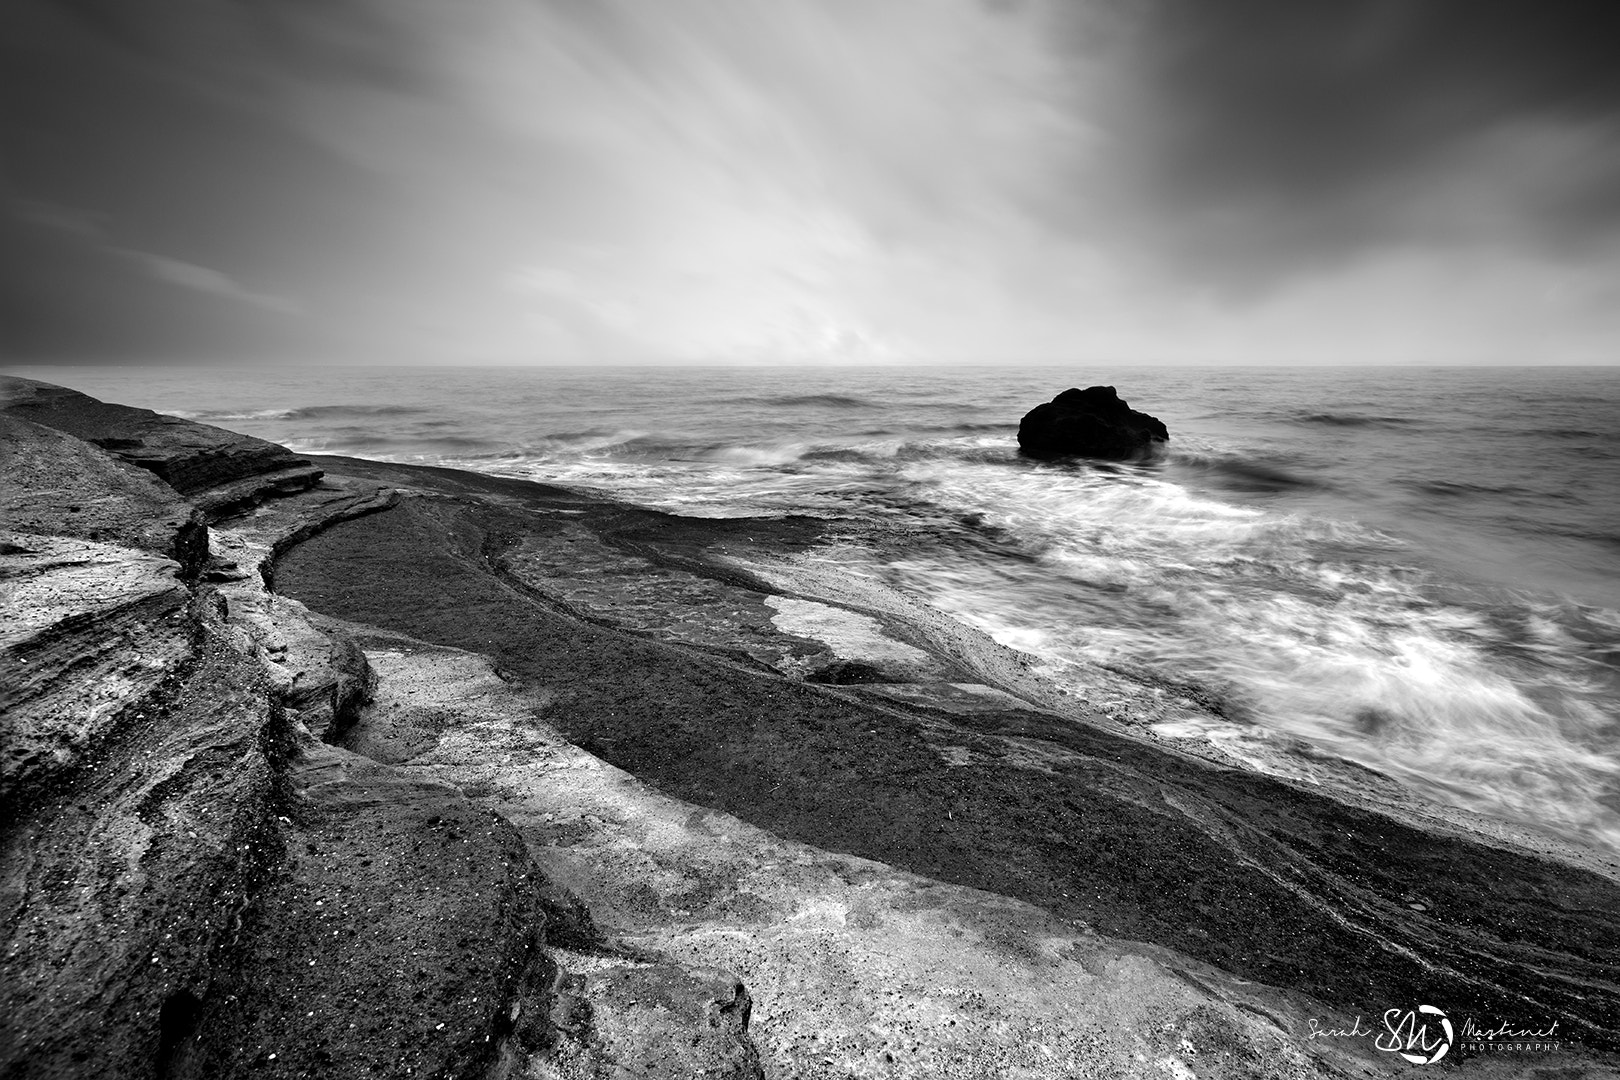 Photograph The Black Rock by Sarah Martinet on 500px